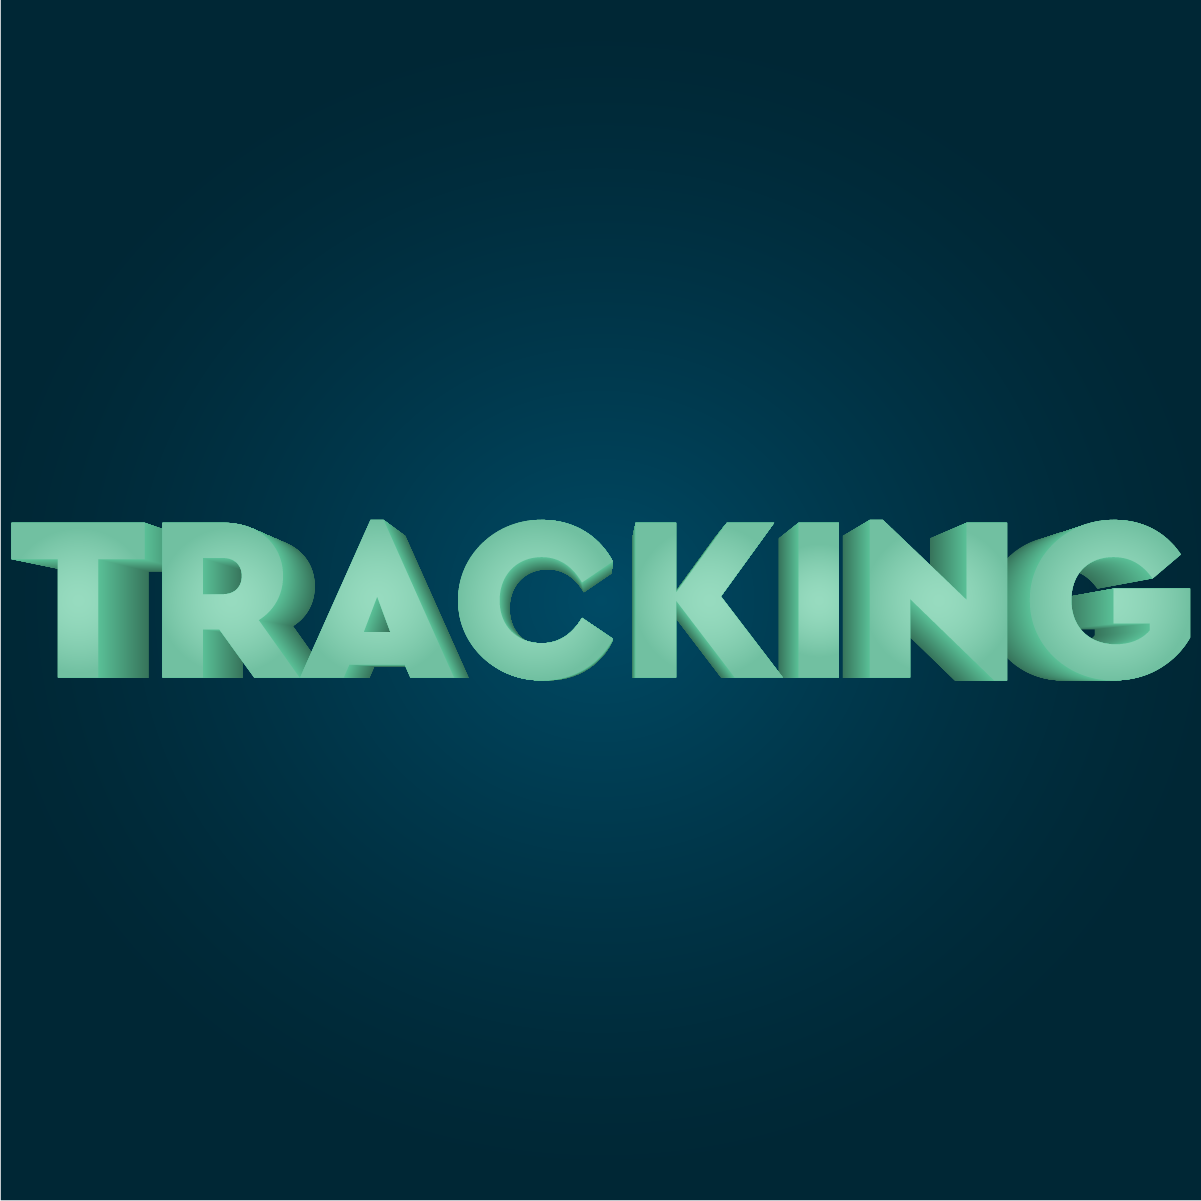 Step 5. Ready To launch-Tracking image